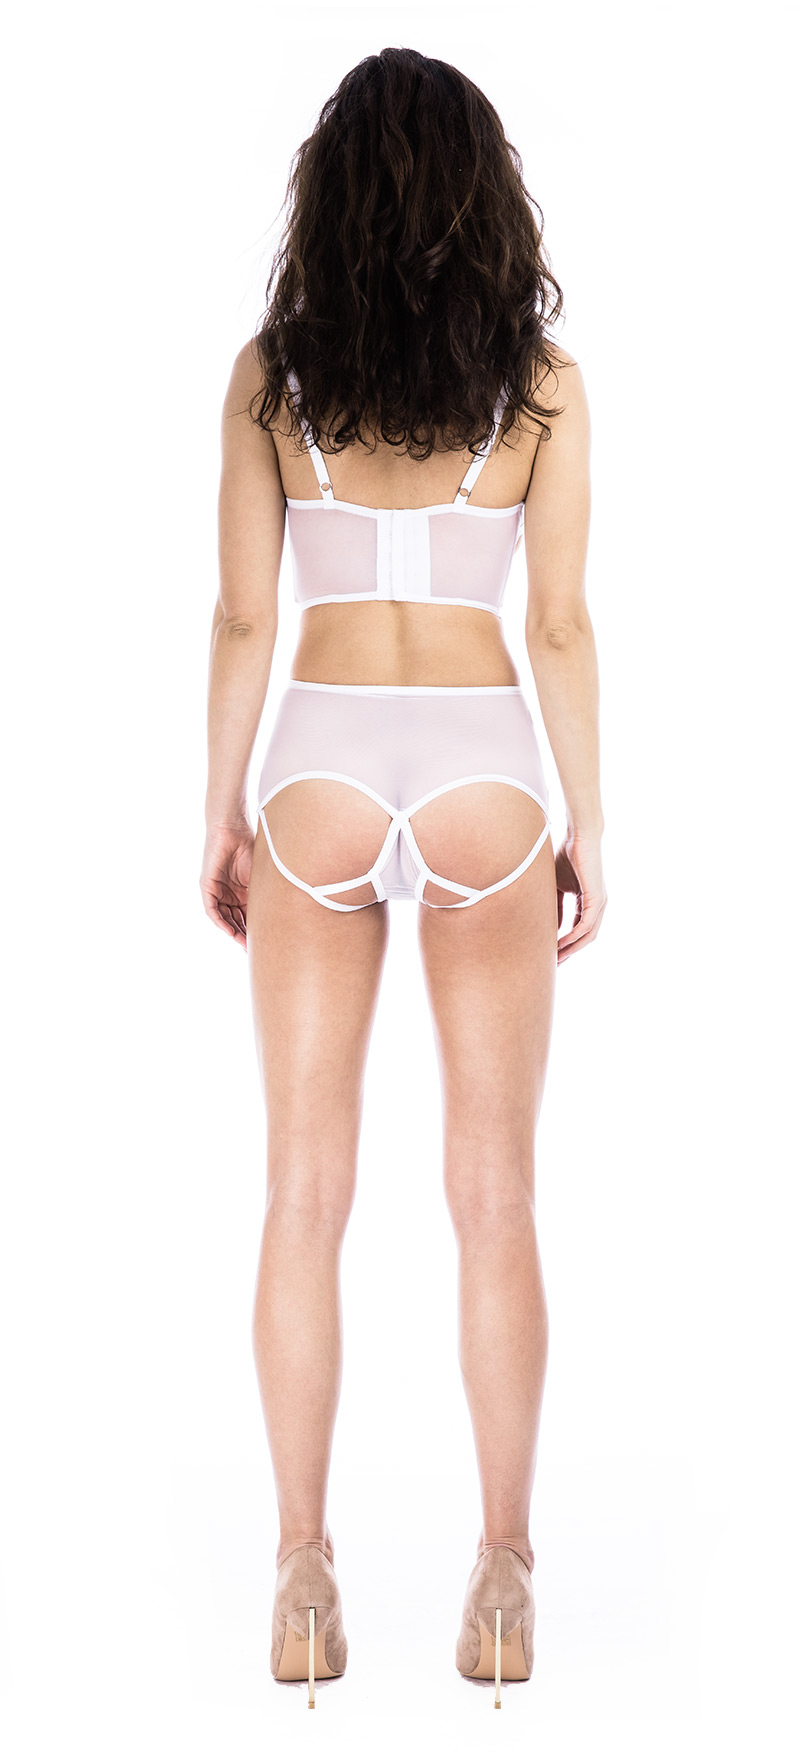 ae76c316956 Prey White High Waisted Knicker